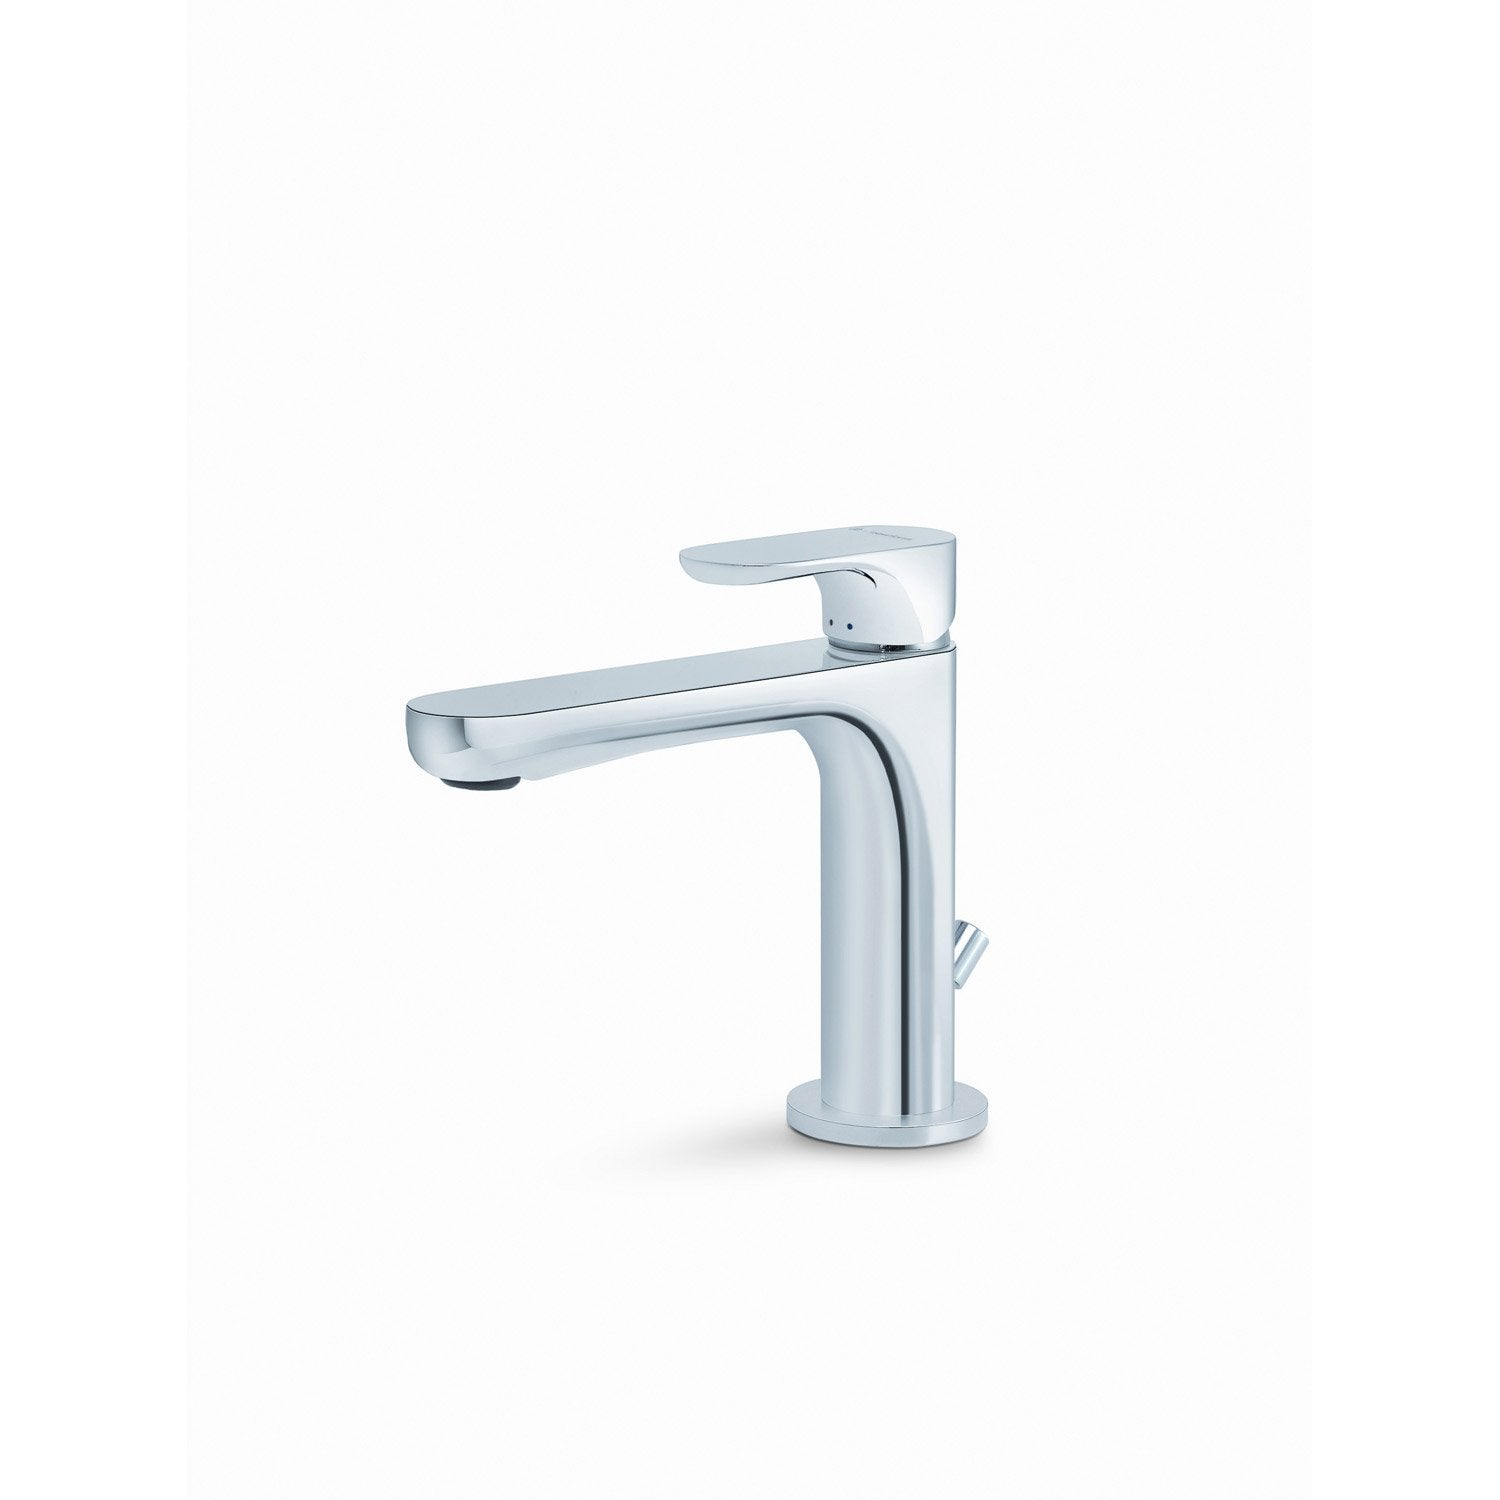 Mitigeur lavabo chrom muse leroy merlin for Lavabo ancien leroy merlin